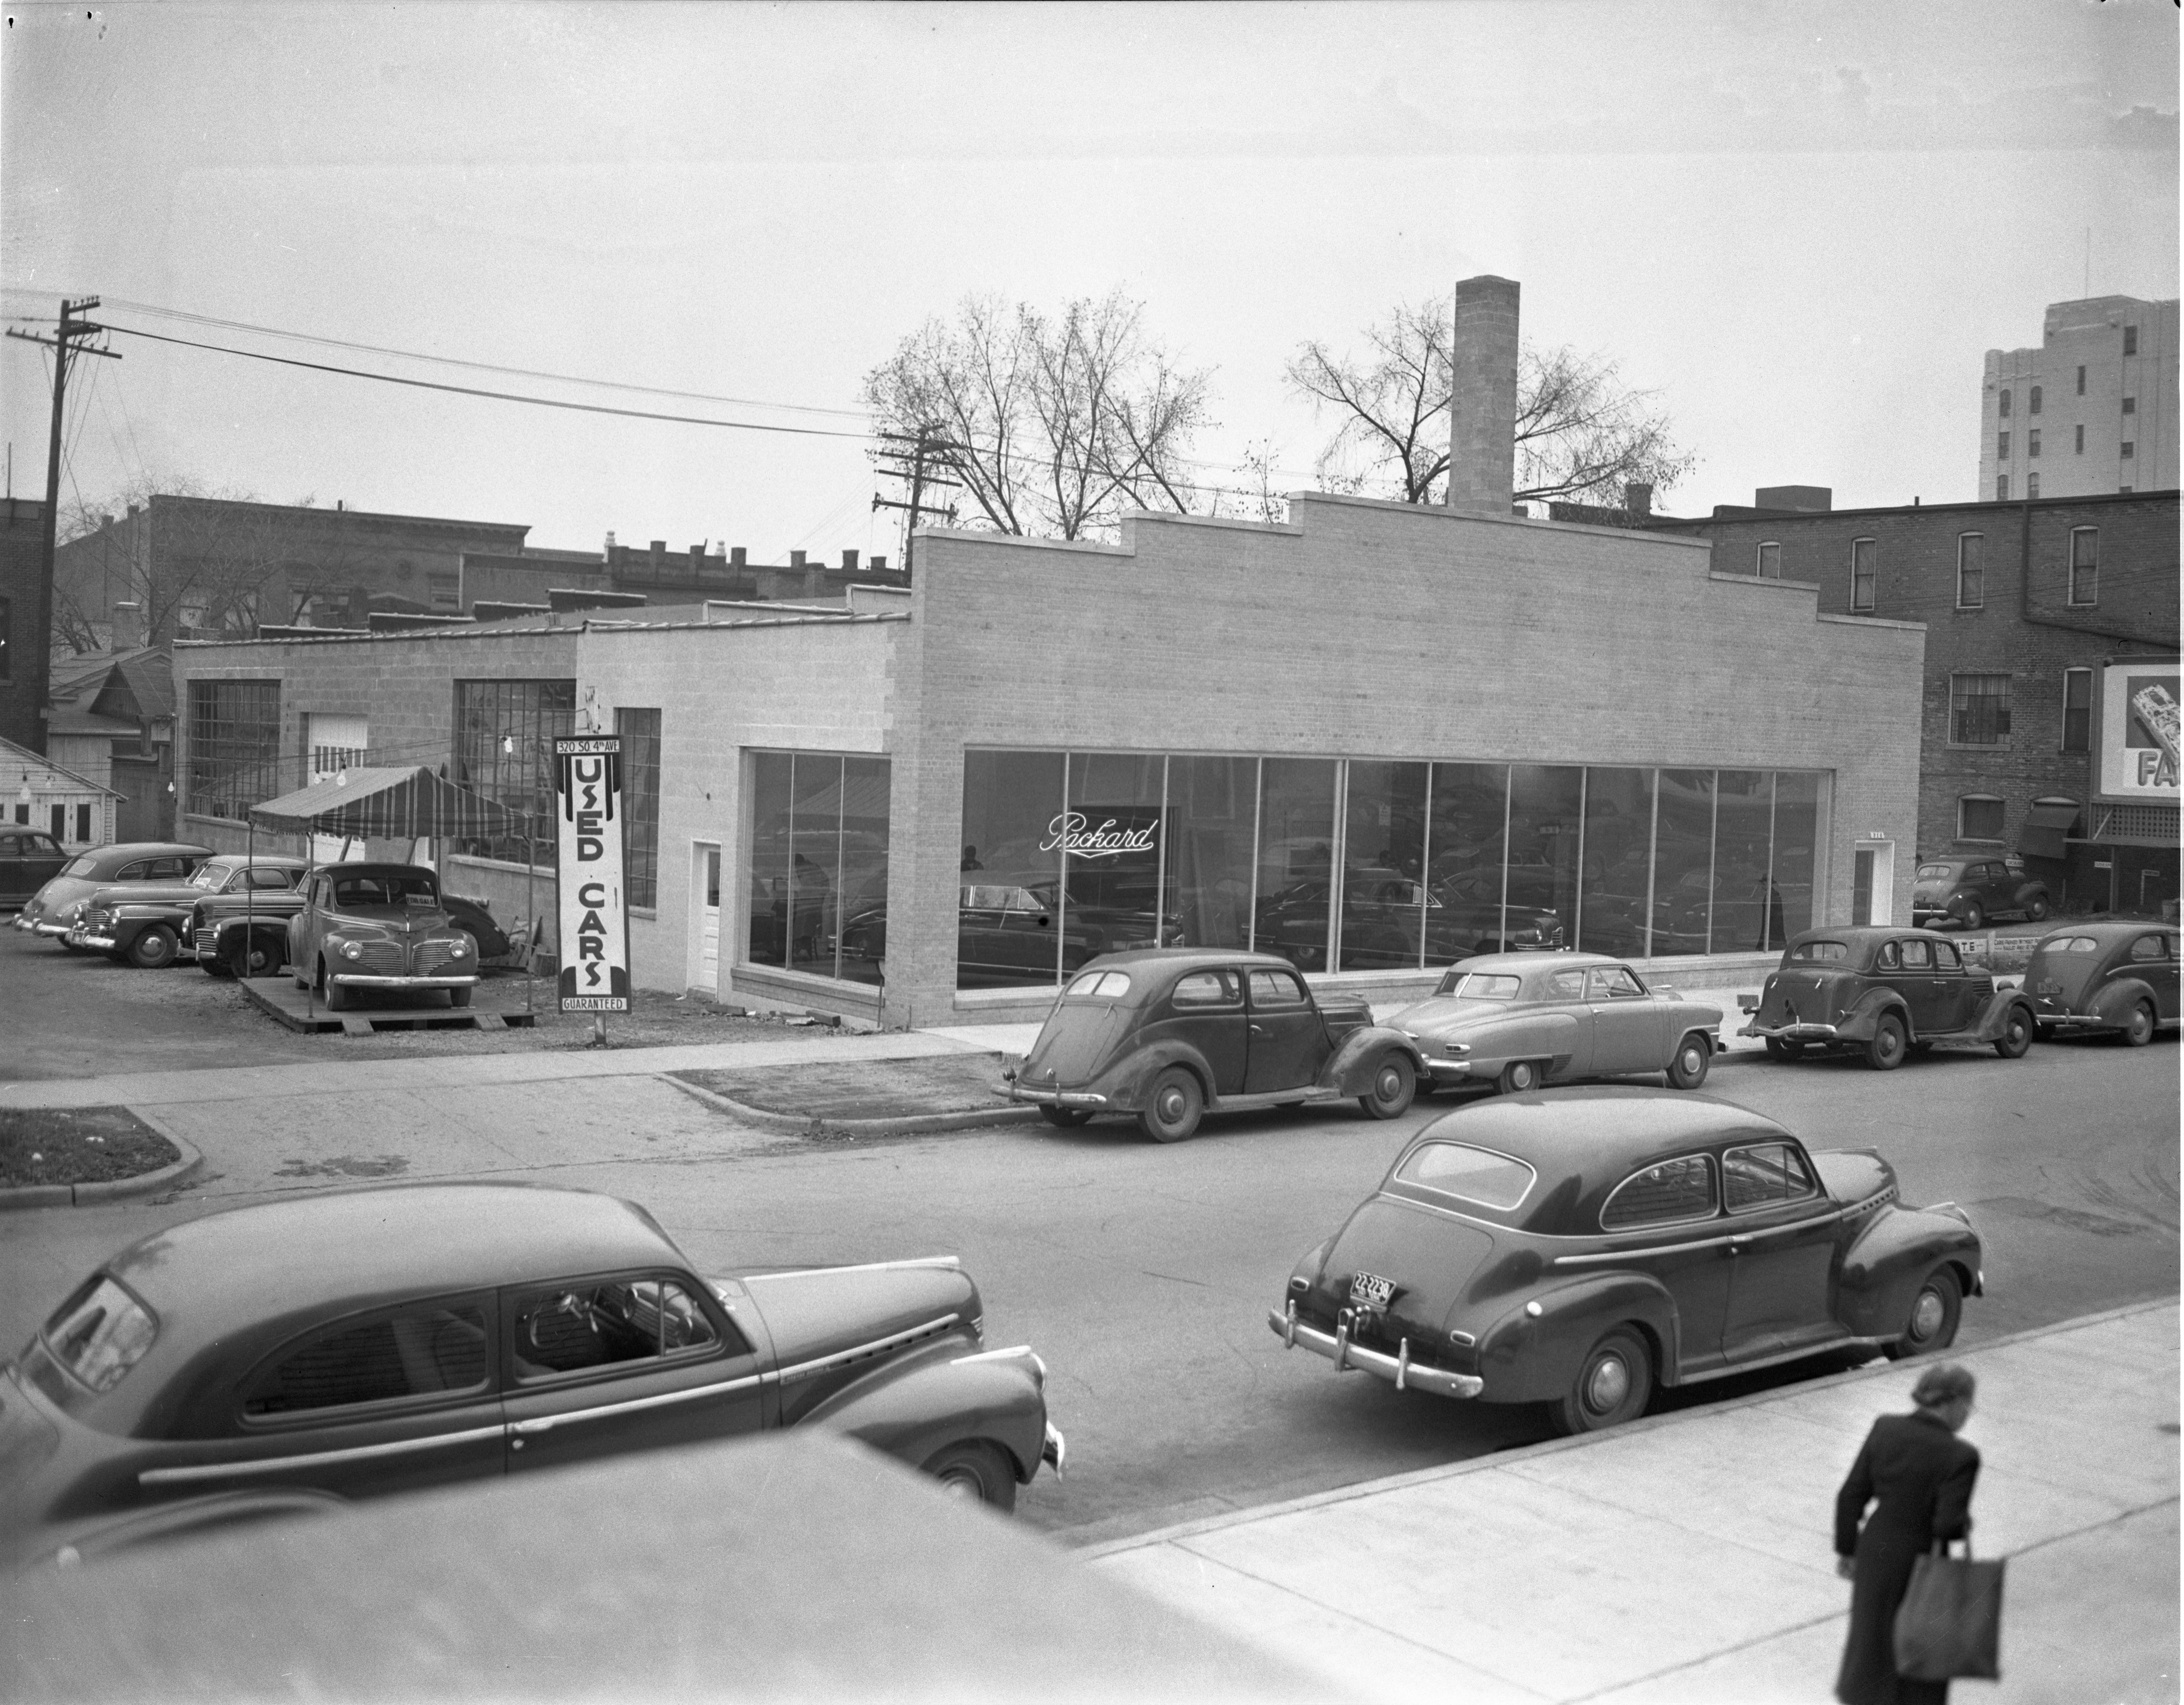 Manausa Motor Sales - New Packard Sales & Service Center, October 1947 image